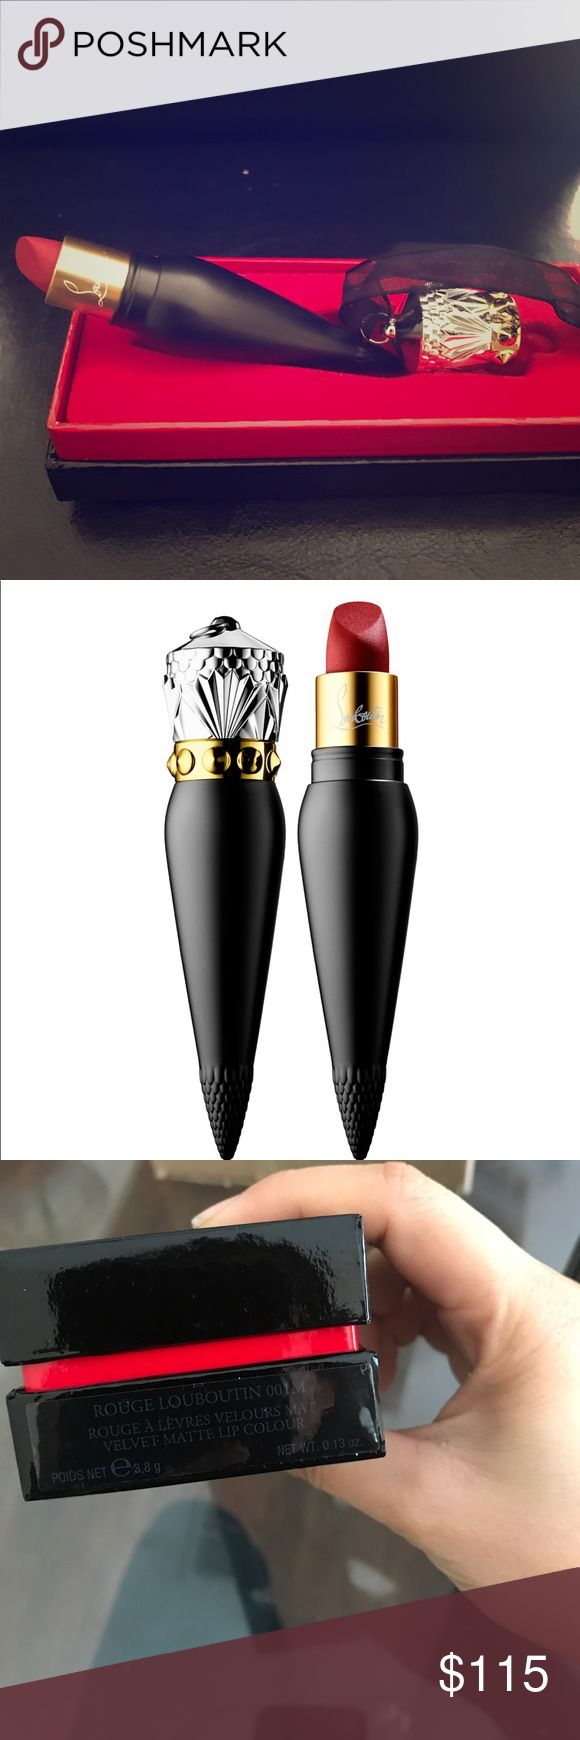 Lipstick A highly-pigmented matte lip color that provides non-drying comfort on the lips and leaves a suede finish. Christian Louboutin Makeup Lipstick